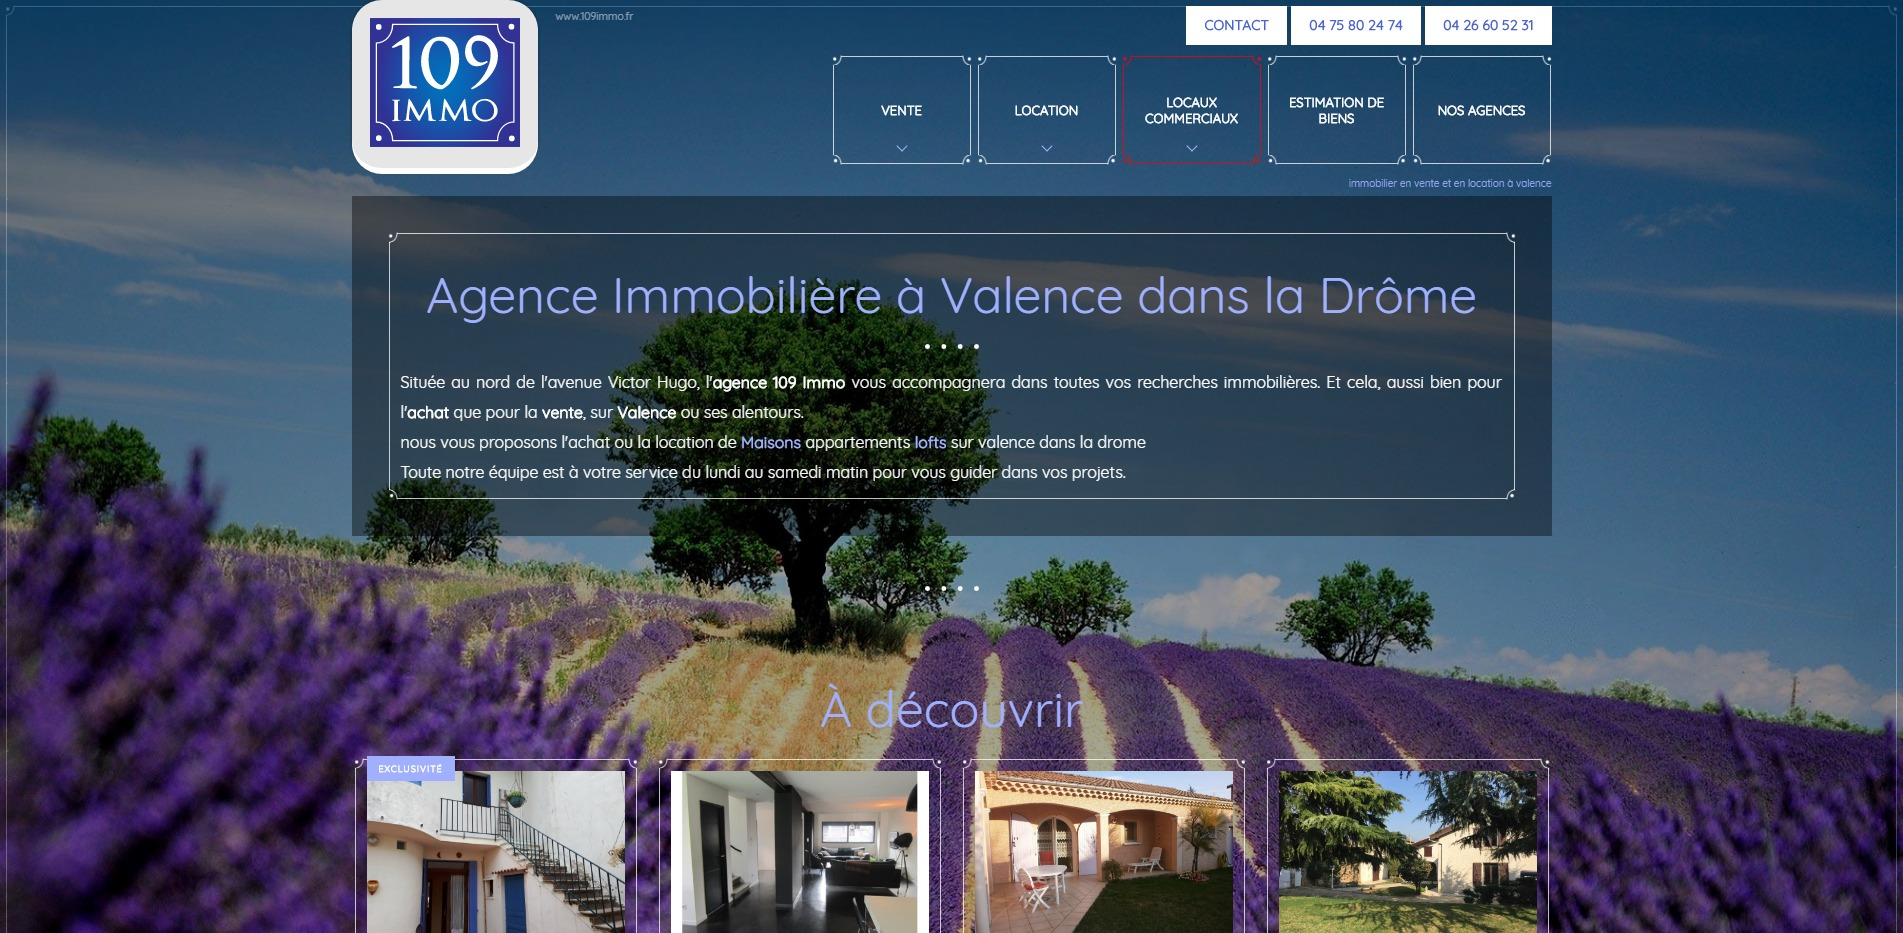 Agence immobili re valence 109 immo agence web for Agence immobiliere valence